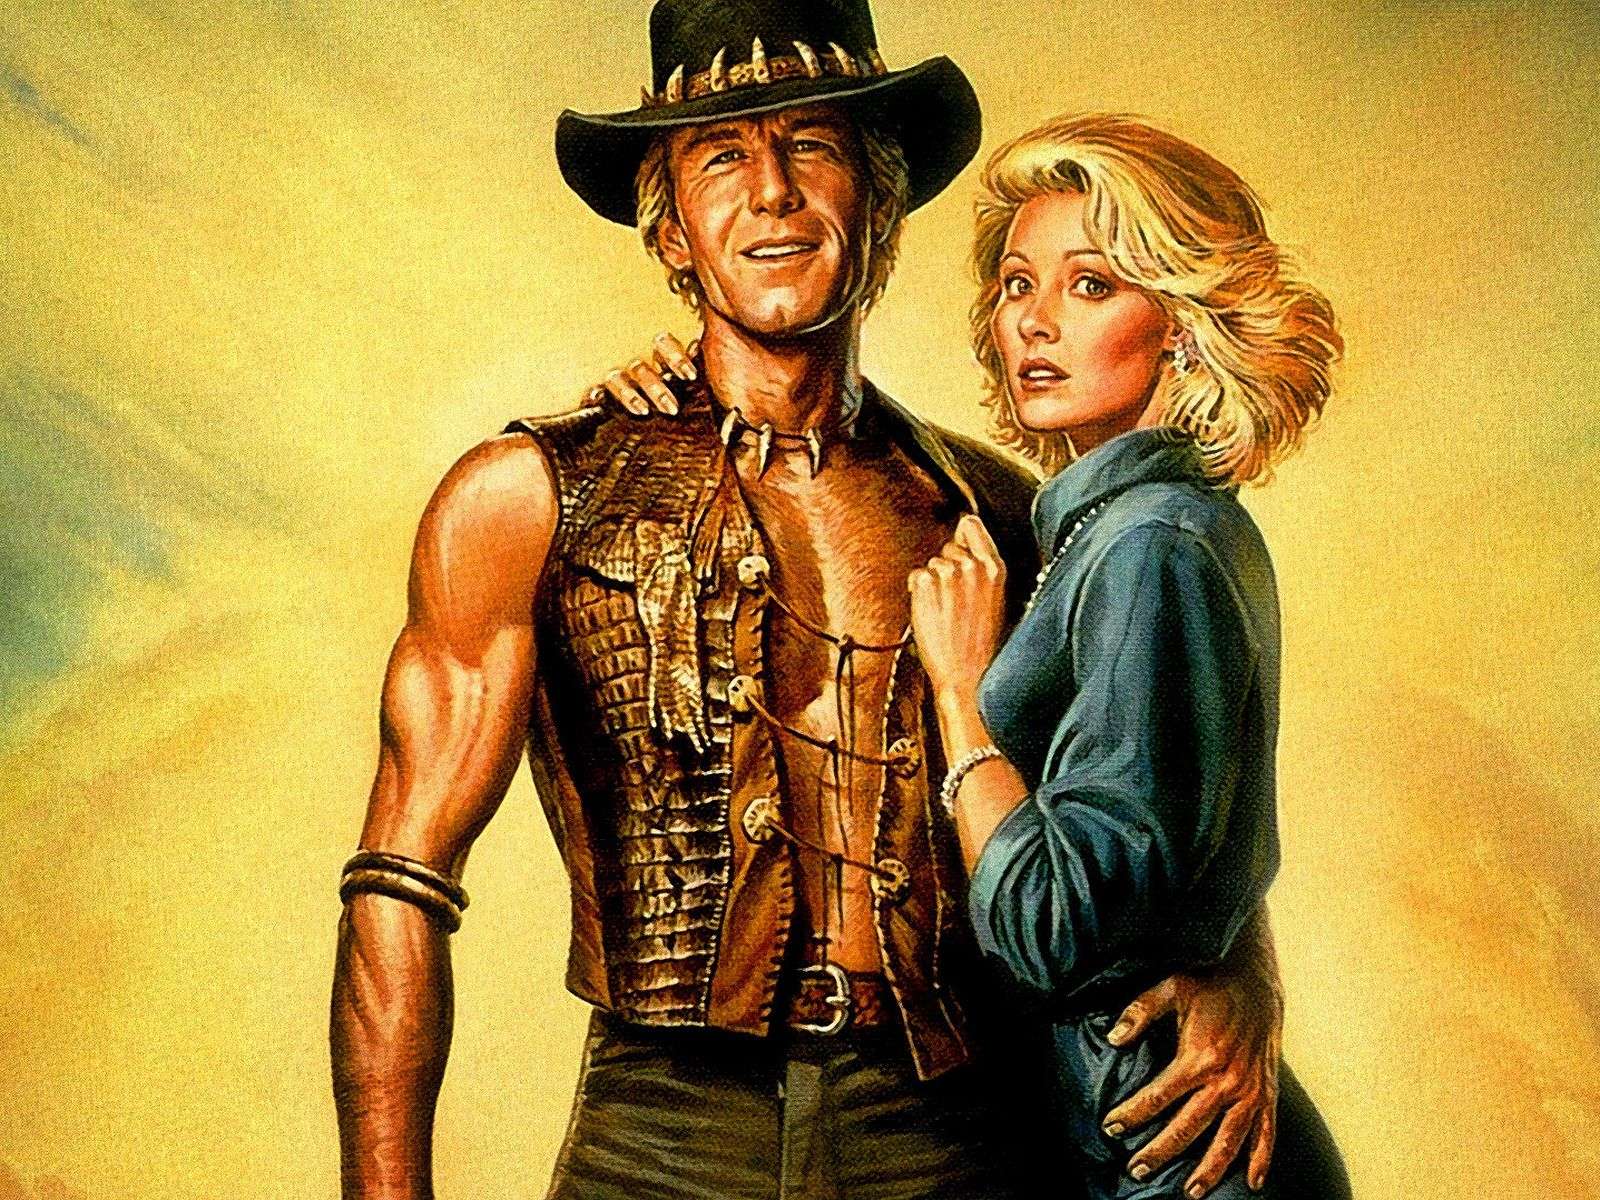 3d Wallpaper Avatar 2 Crocodile Dundee Hd Wallpapers Background Images